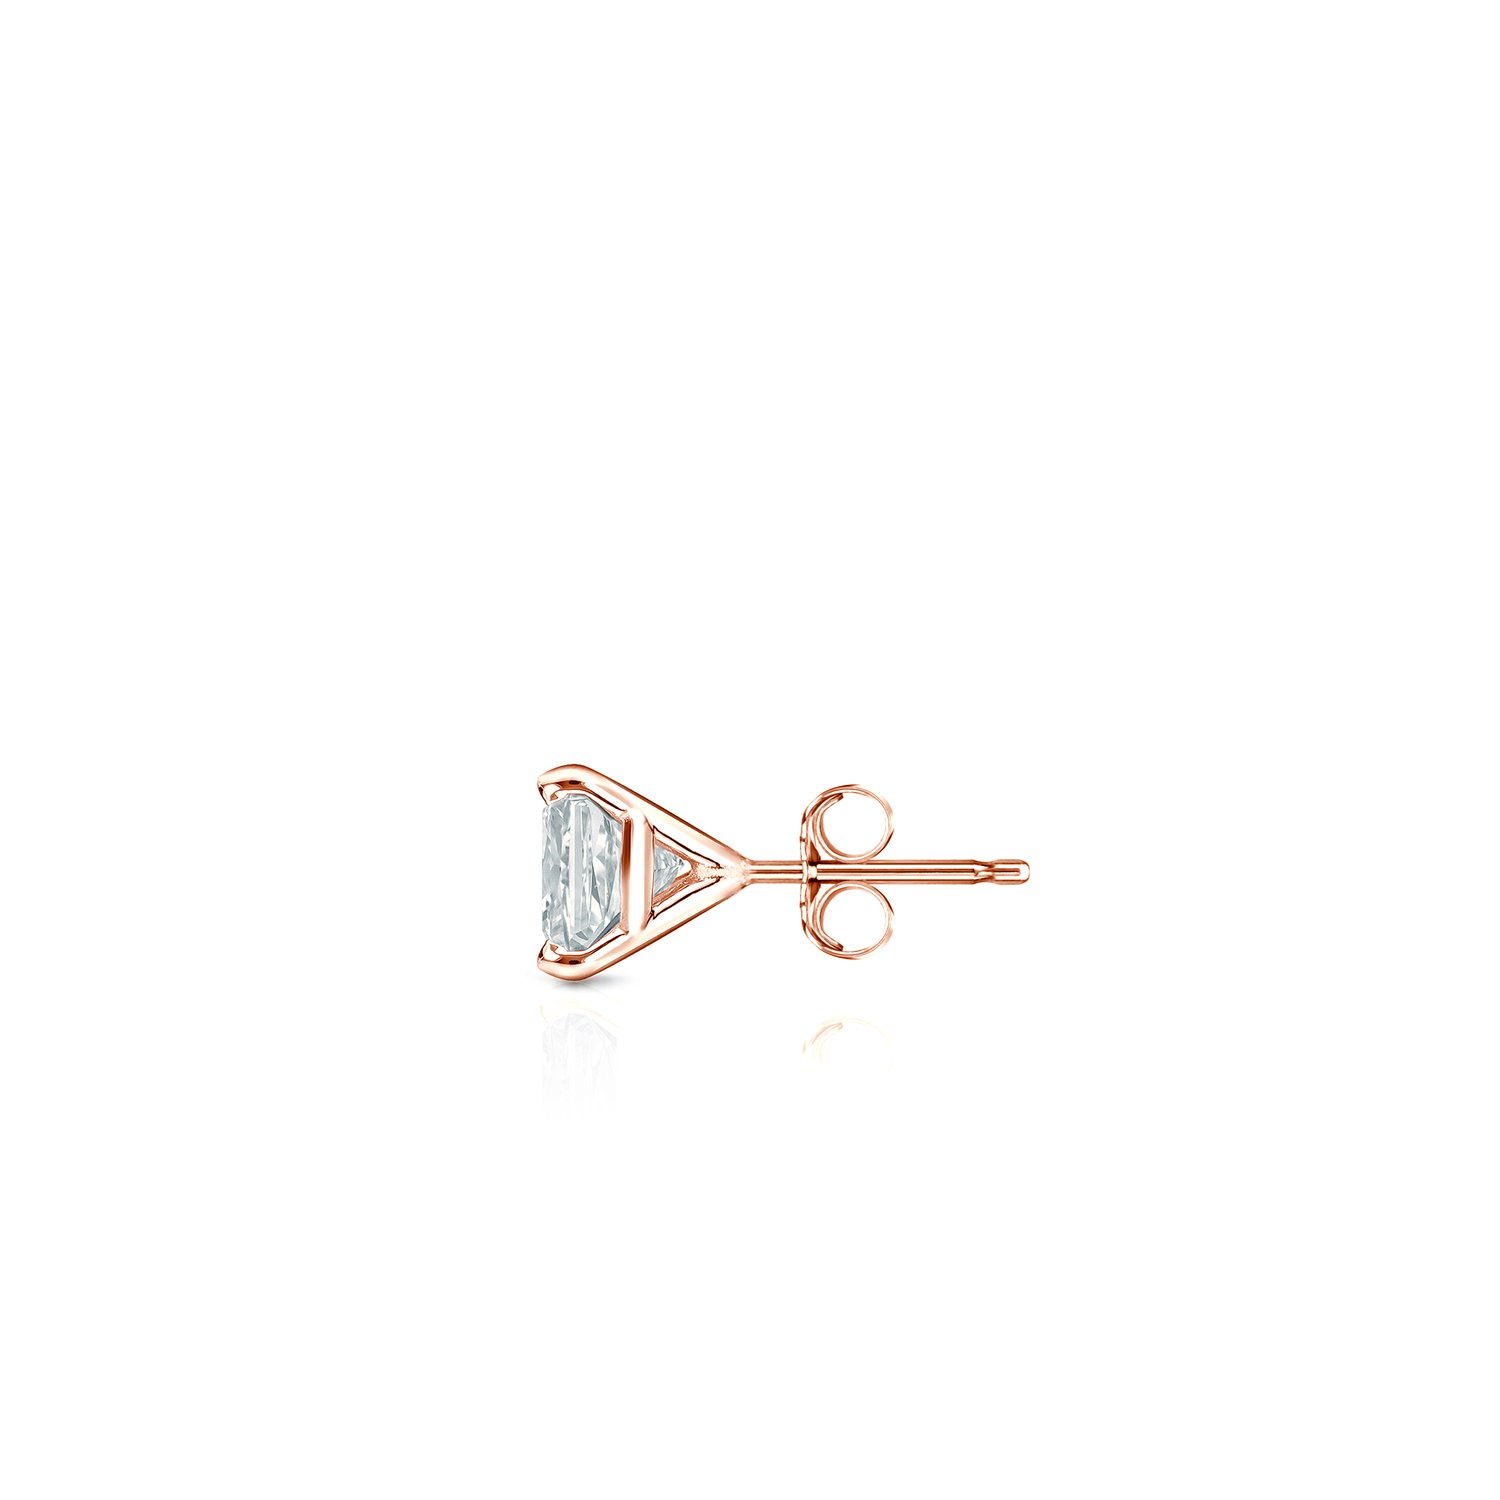 14k Rose Gold Men Princess Diamond Simulant CZ SINGLE STUD Earring 4Prong 1//8-1ct,Excellent Quality